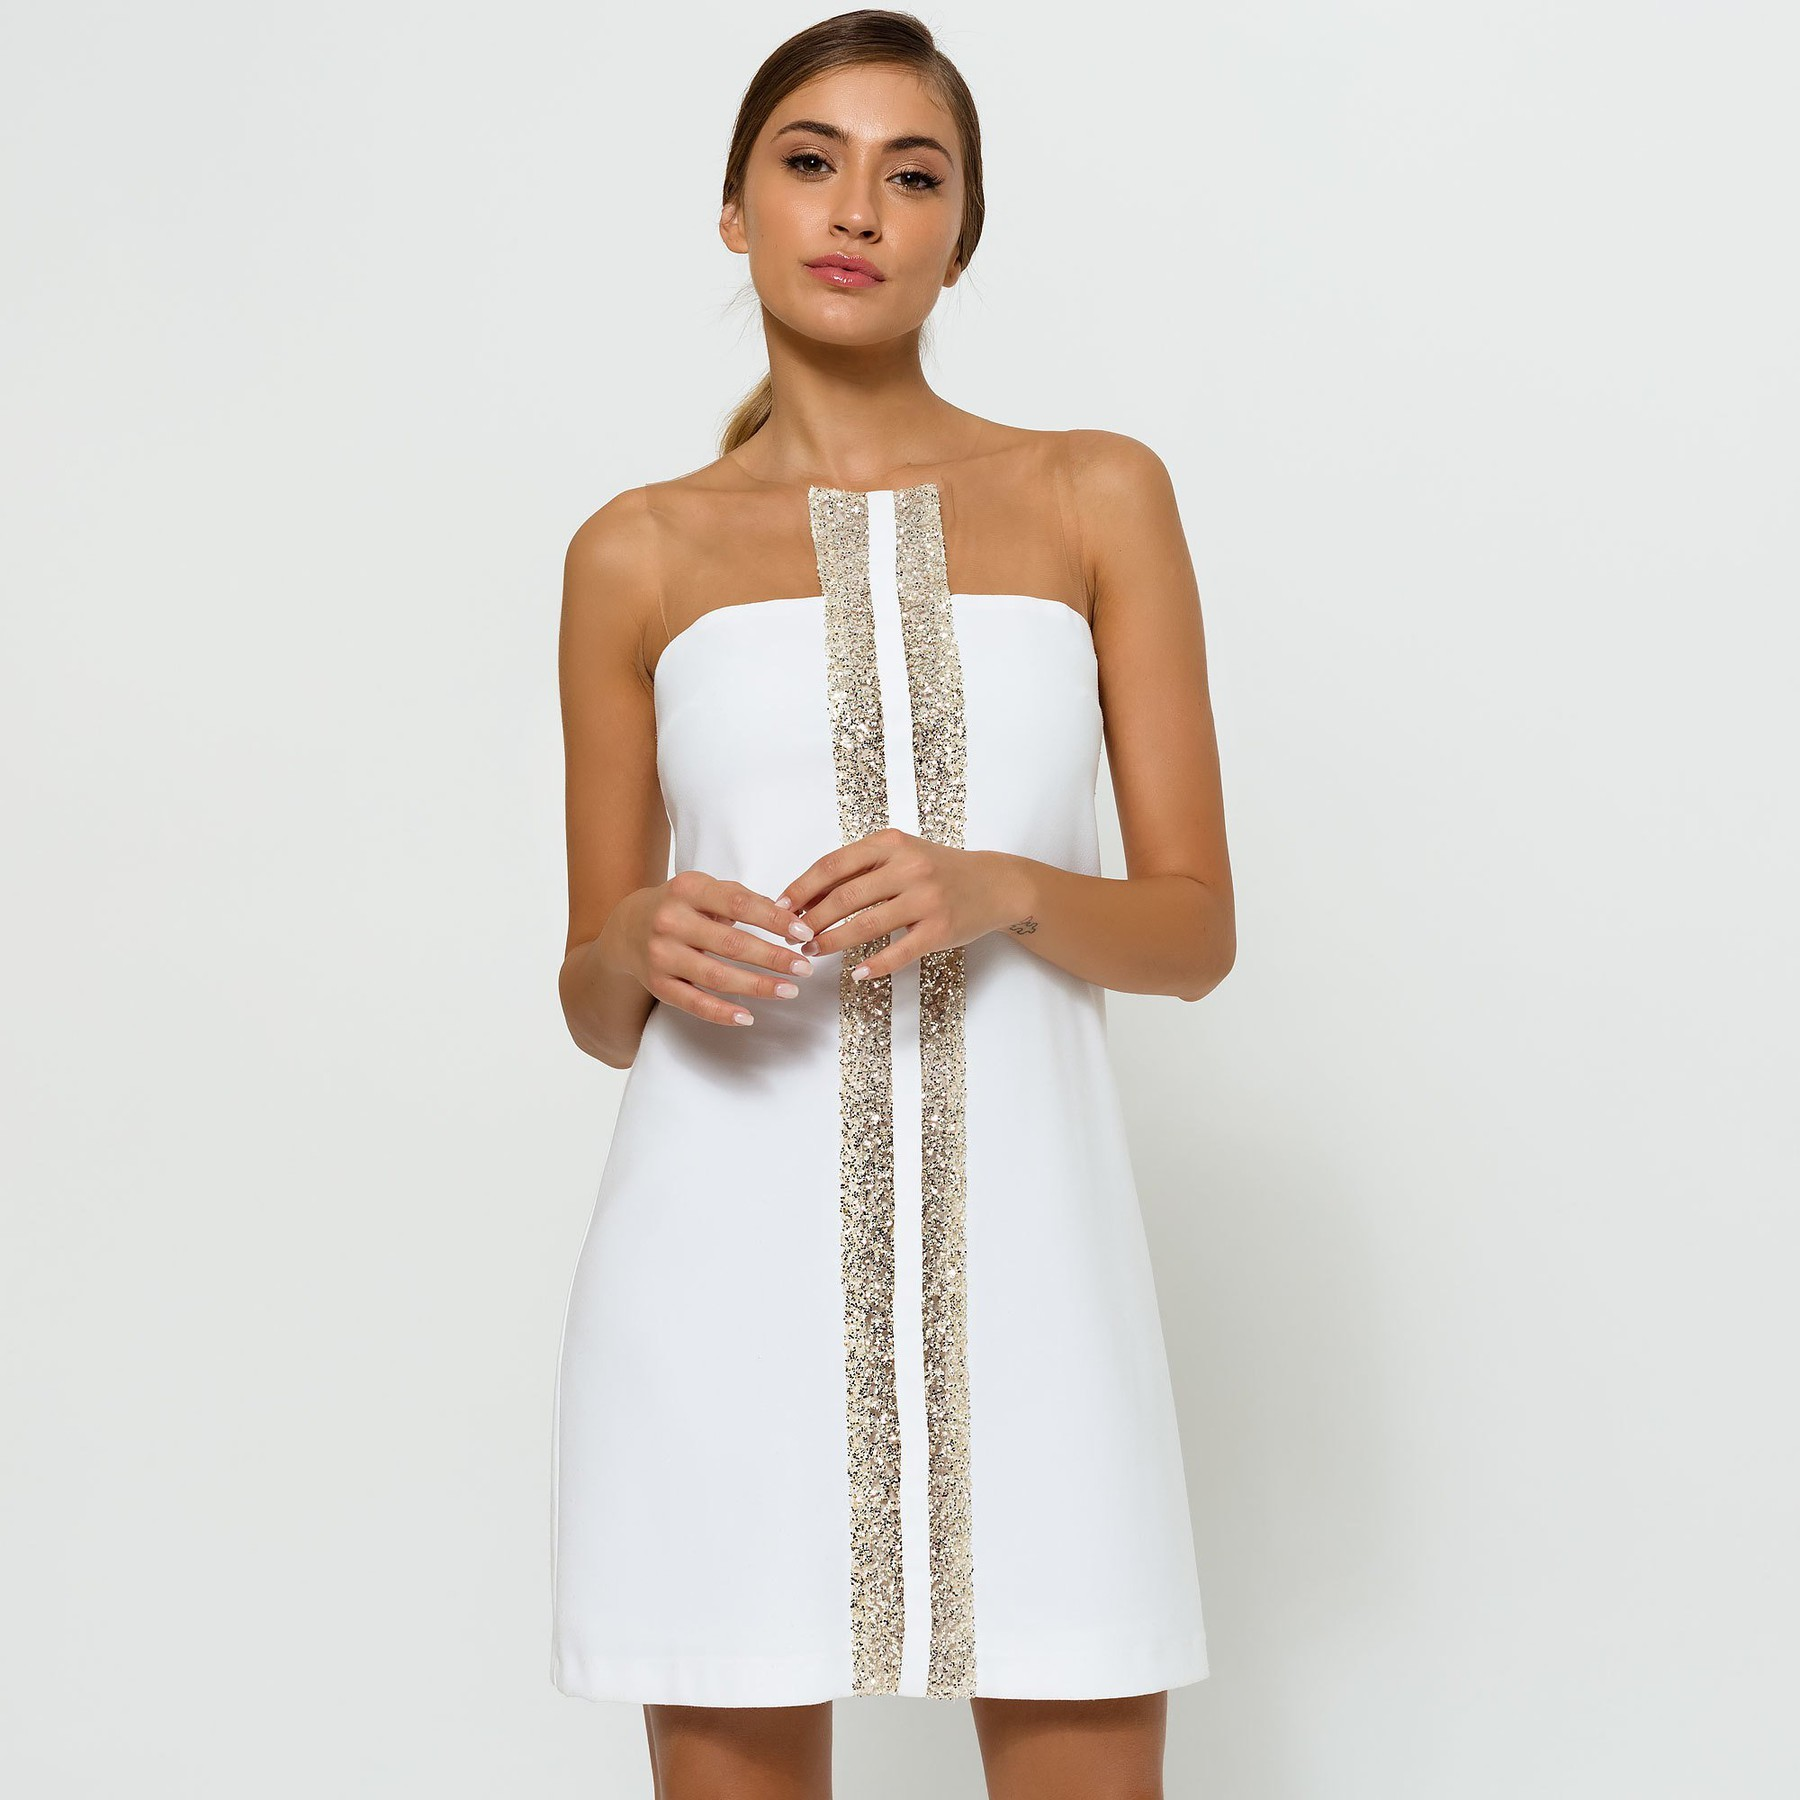 Ivory Dress with Glitter Stripes ACCDRIV3057